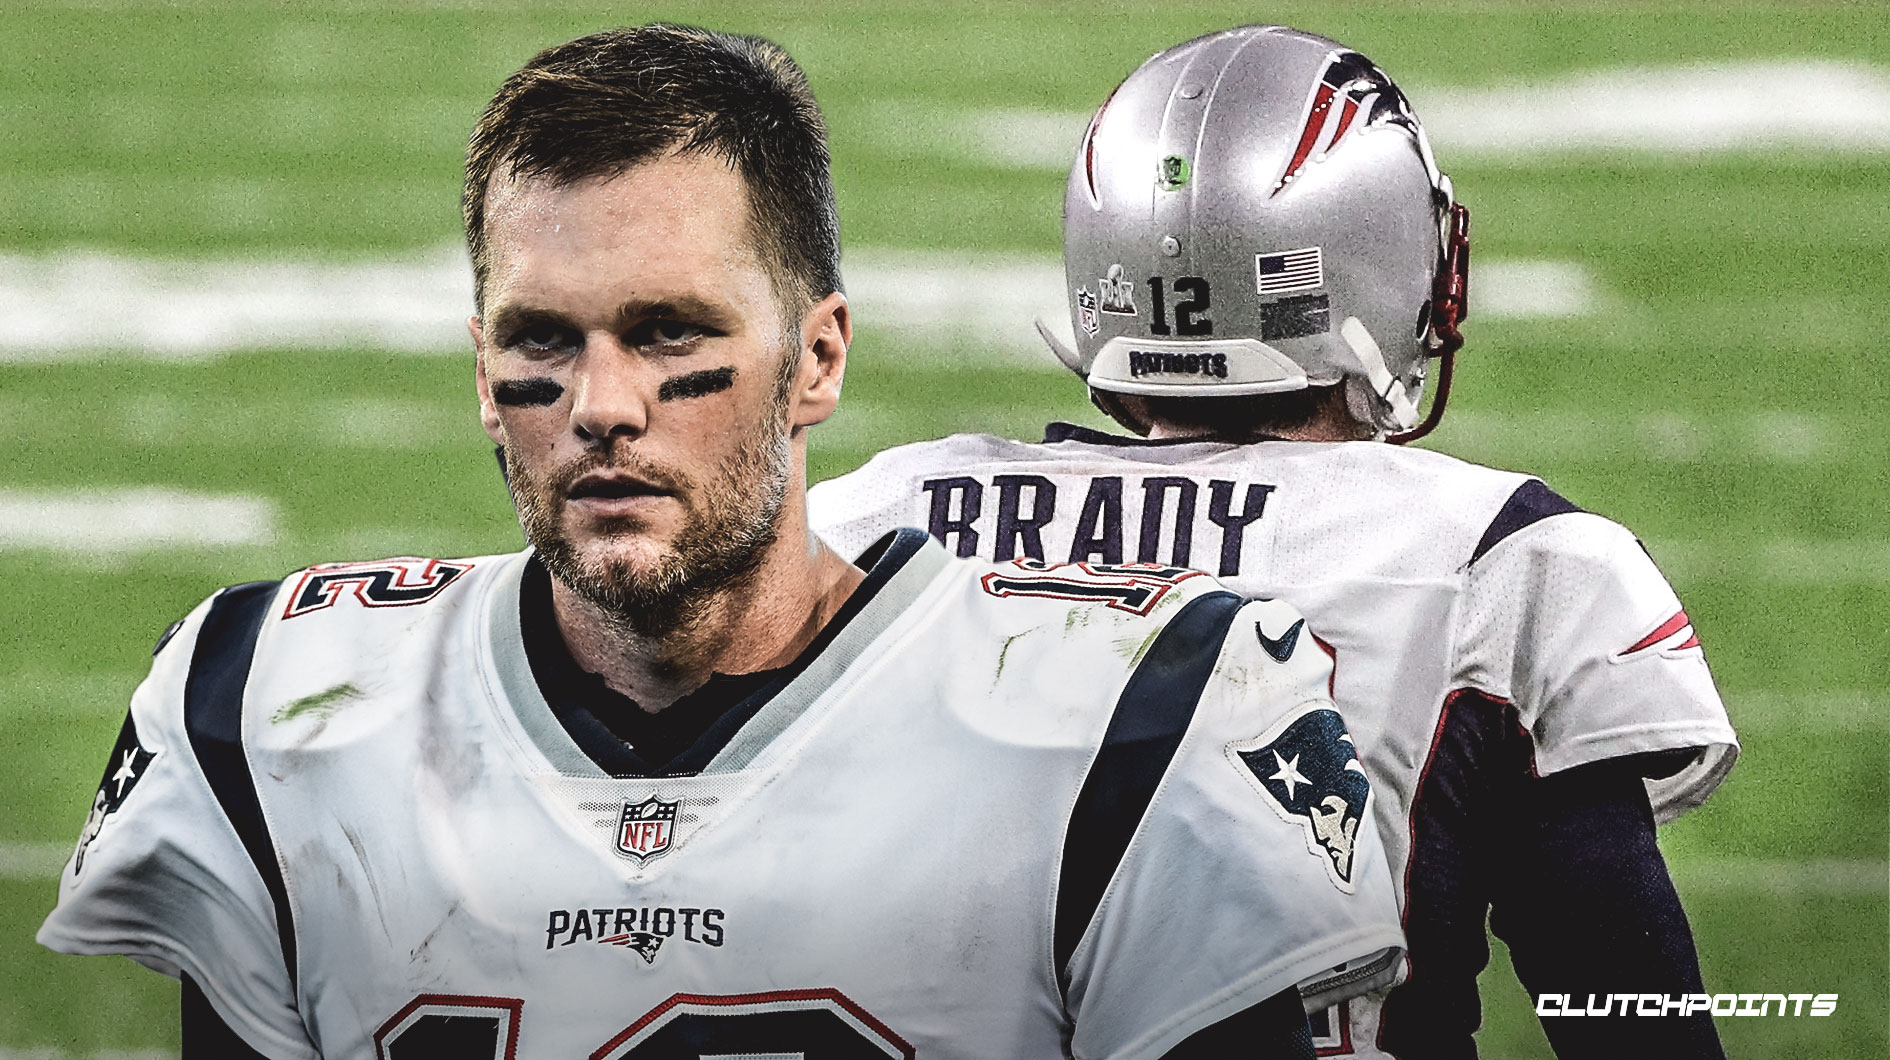 Patriots' Tom Brady limited in practice with calf injury